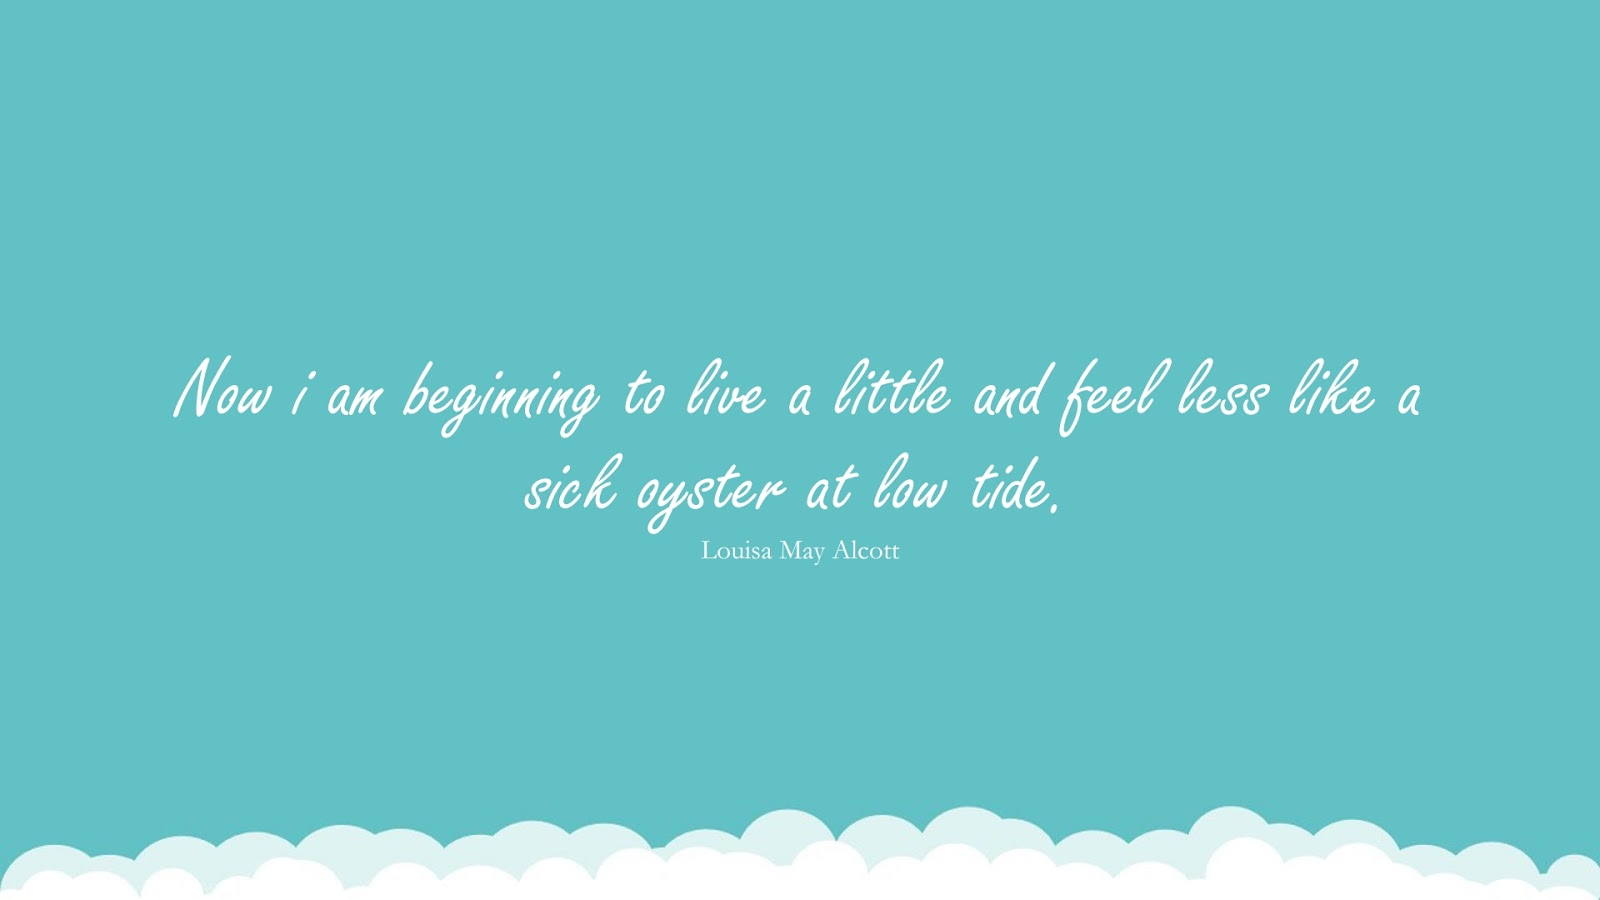 Now i am beginning to live a little and feel less like a sick oyster at low tide. (Louisa May Alcott);  #DepressionQuotes